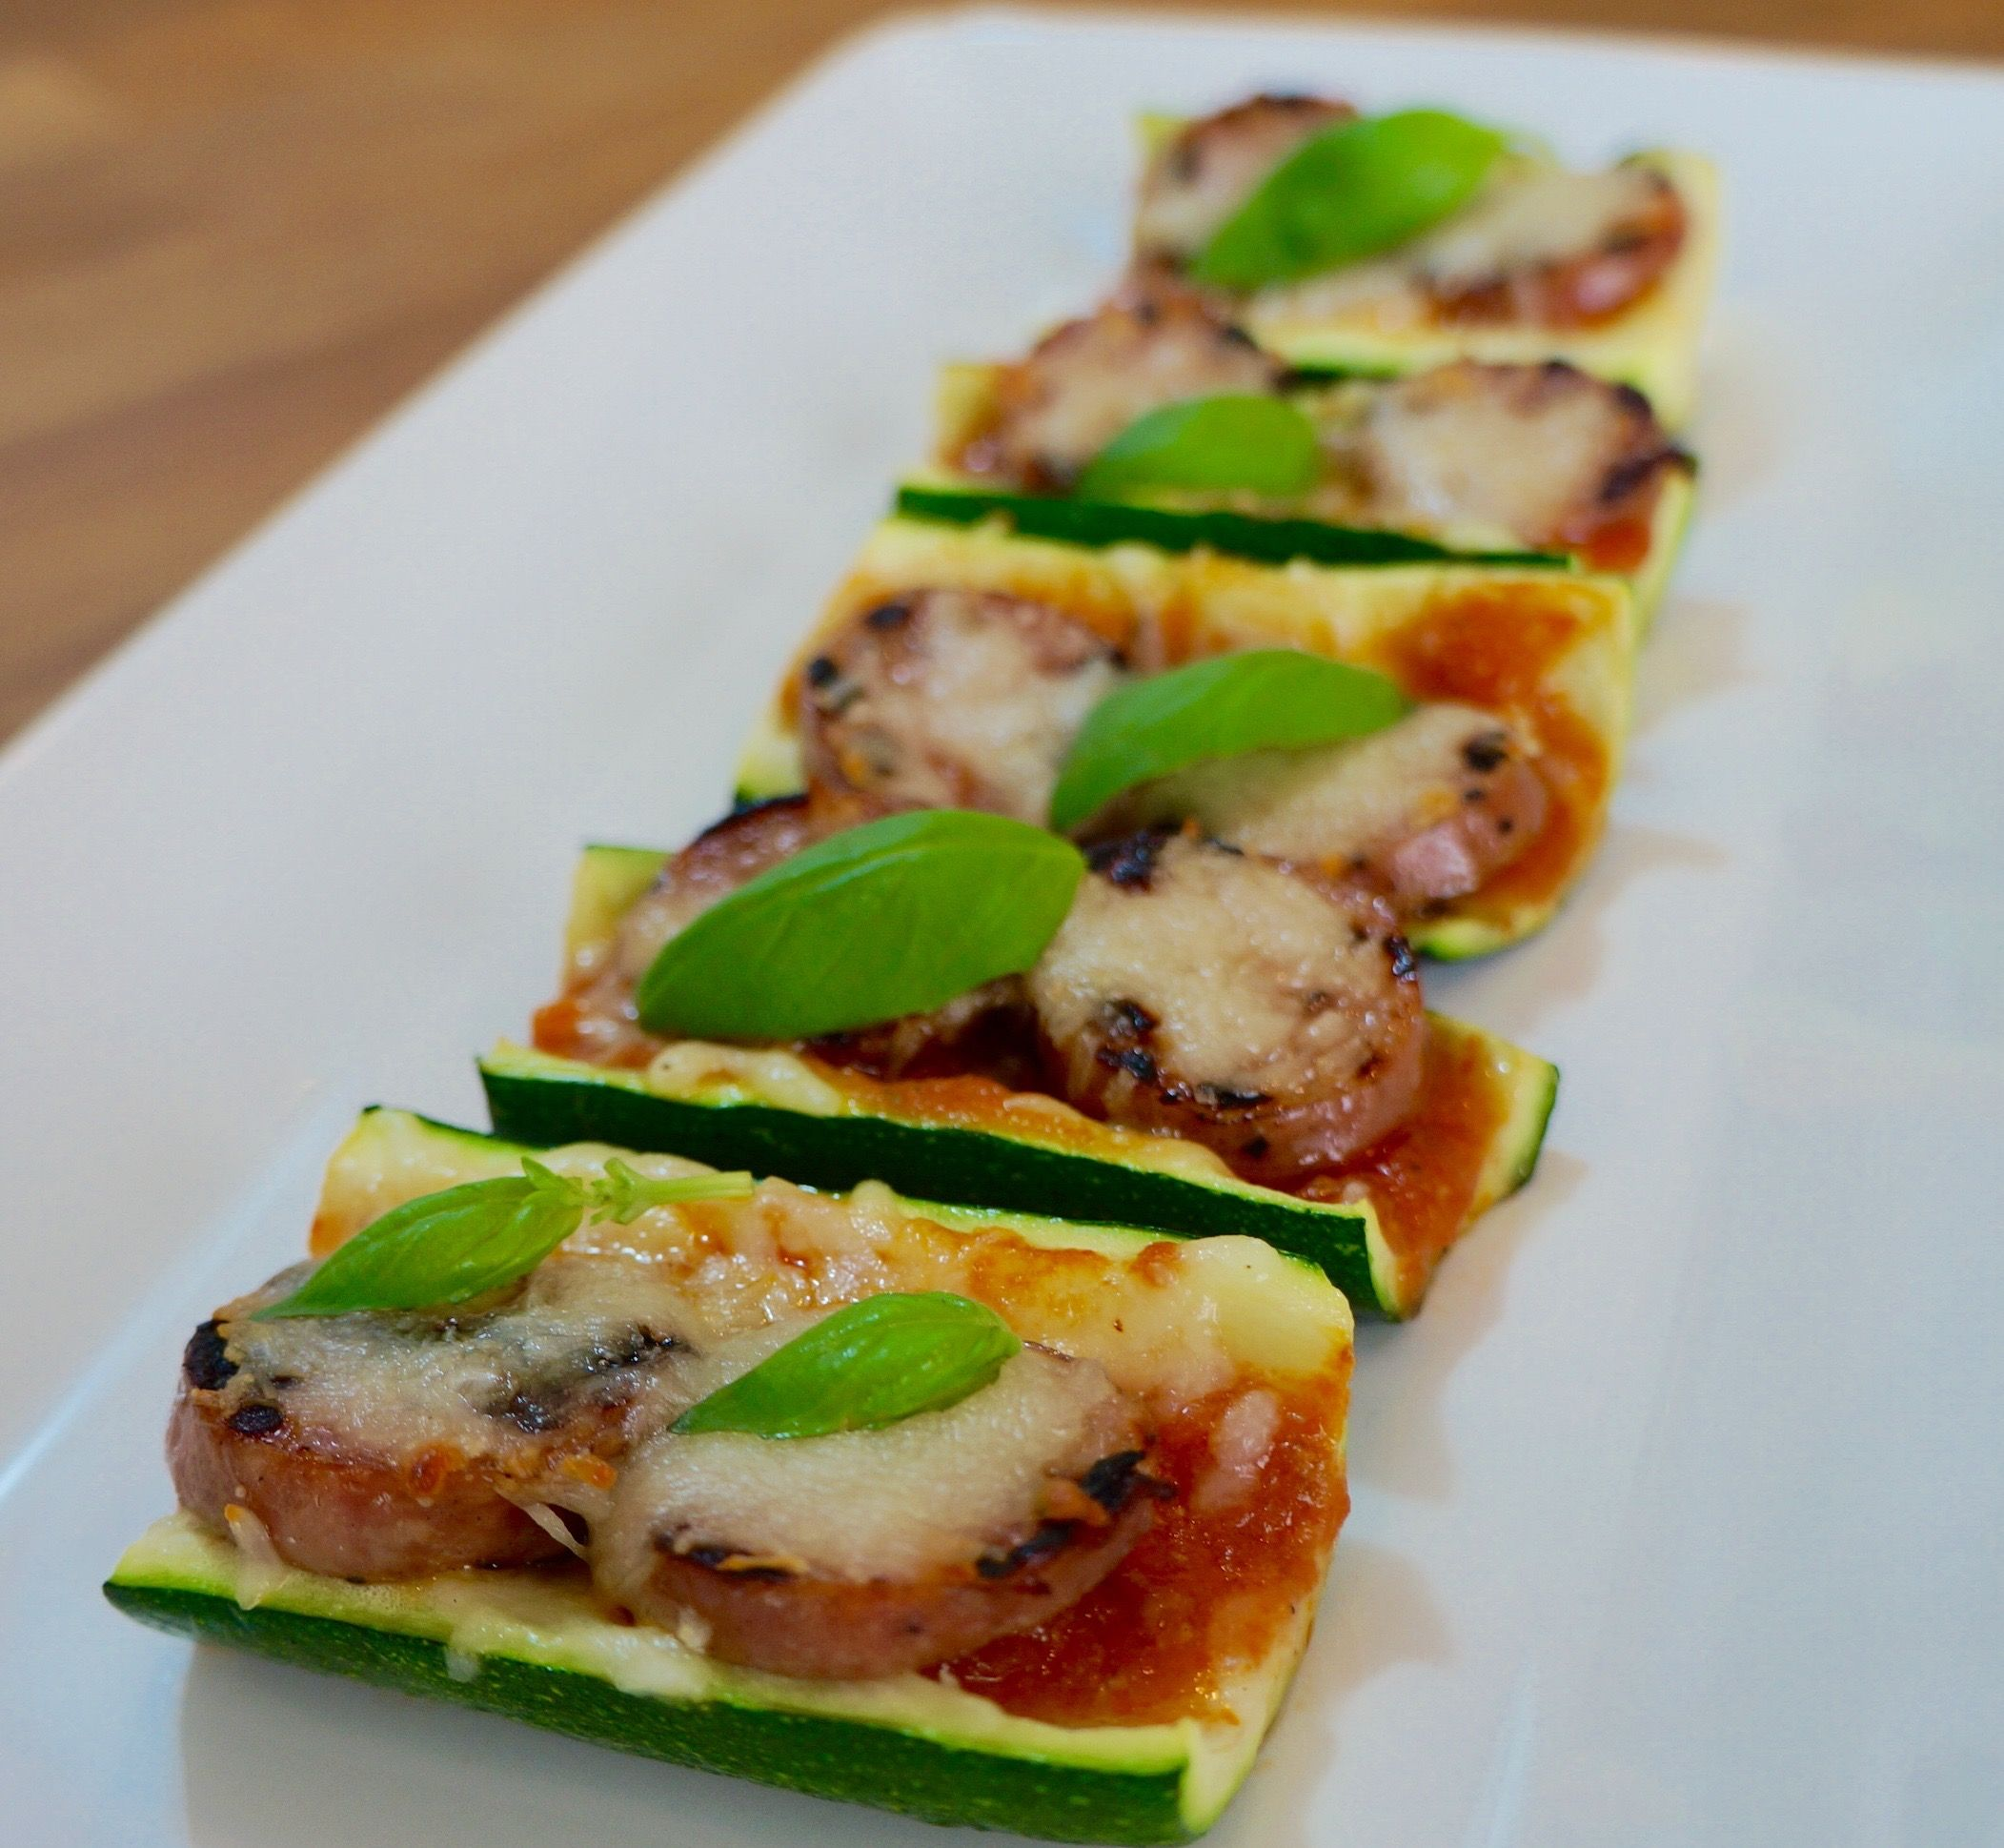 Zucchini Pizza Boats with Chicken Sausage and Basil - FlavorFinds.com  healthy recipes, diet recipes, easy recipes, dinner recipes, easy weekday recipes, low fat recipes, gluten free recipes, zucchini recipes, zucchini boat pizza recipes, chicken sausage recipes, pizza recipes, healthy pizza recipes #zucchini